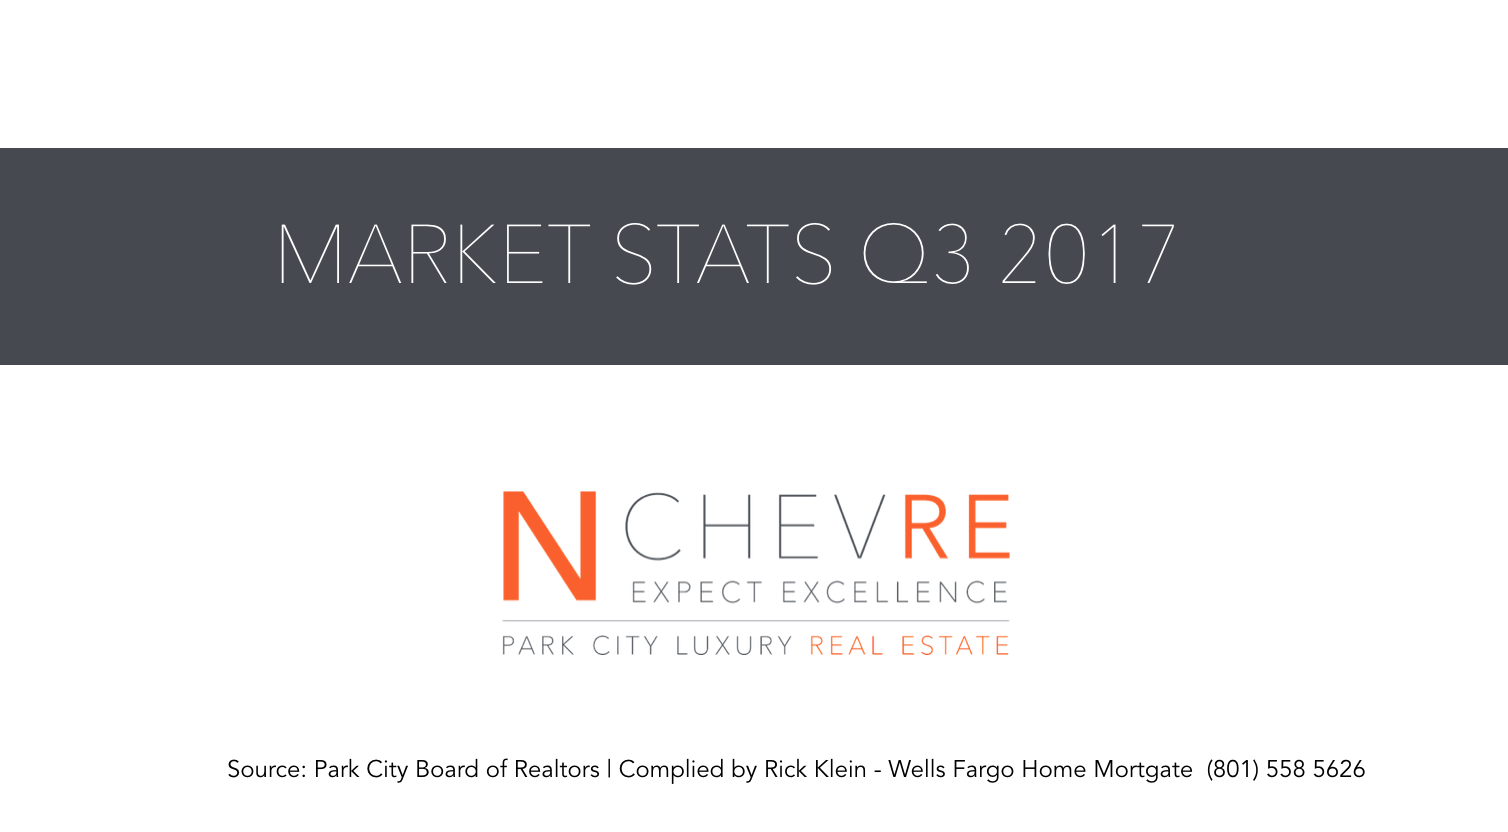 Q3 2017 Park City Real Estate Market Statistics